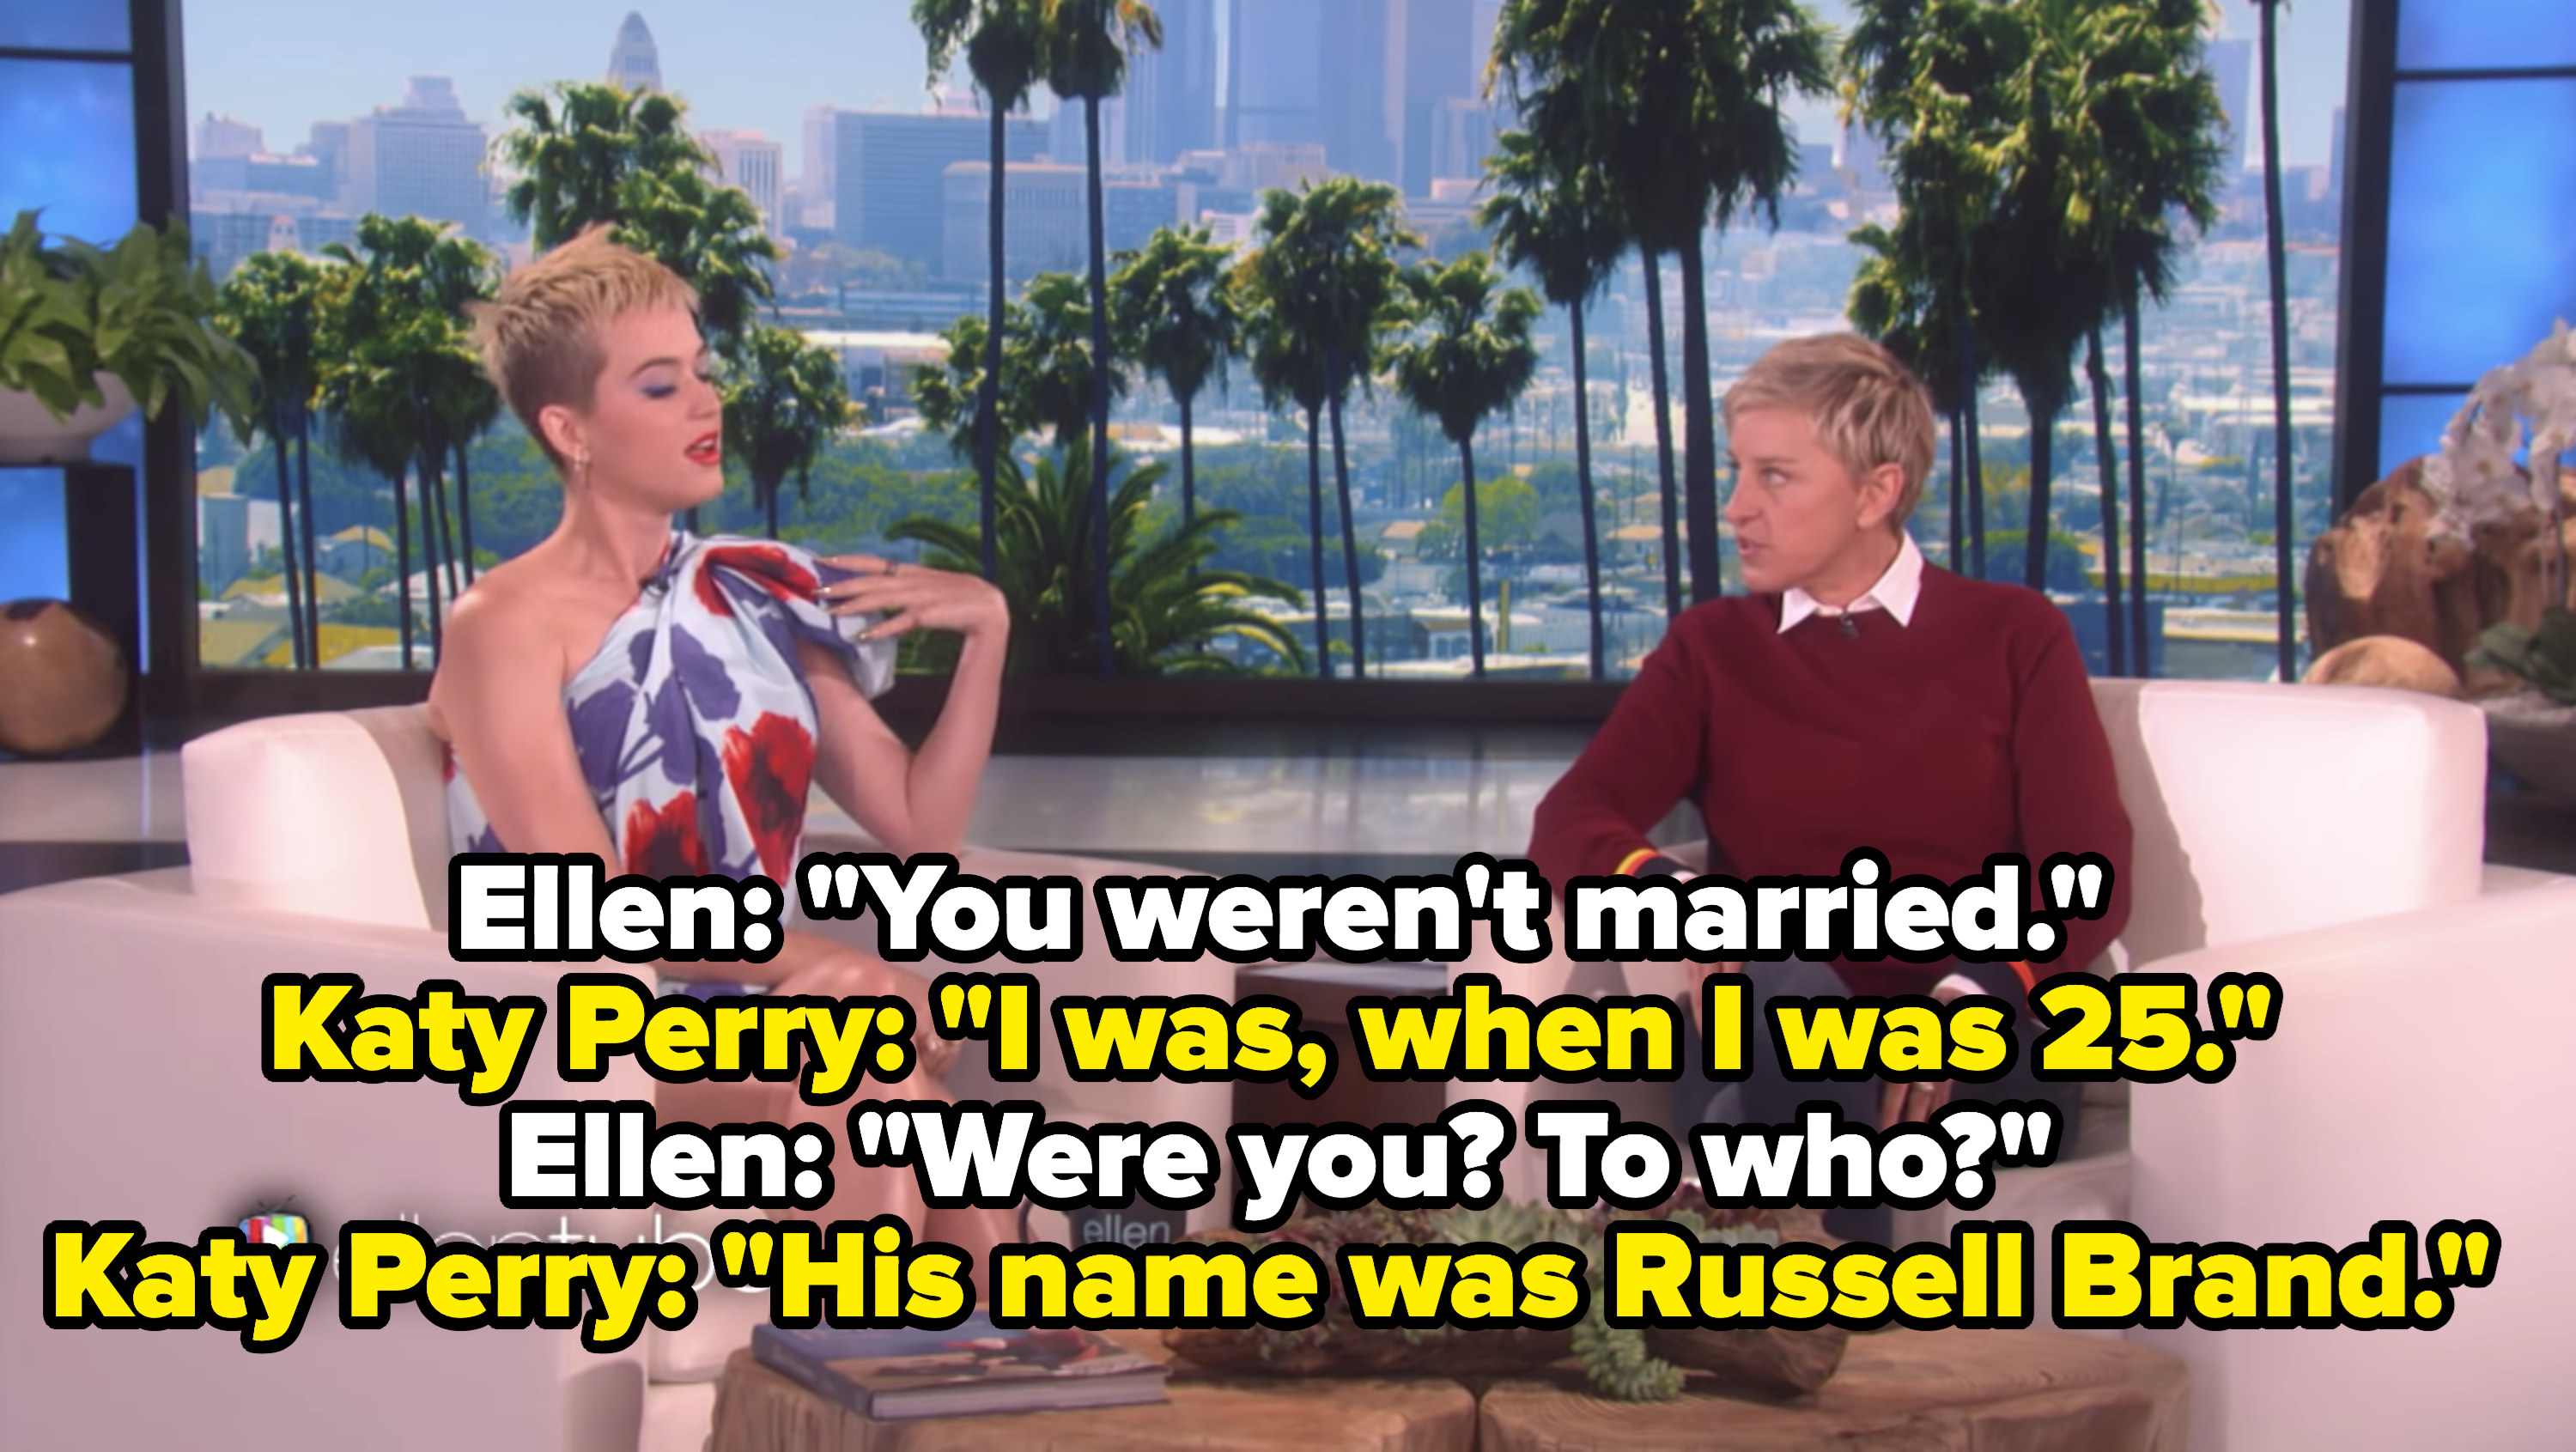 Katy Perry appearing on The Ellen Show